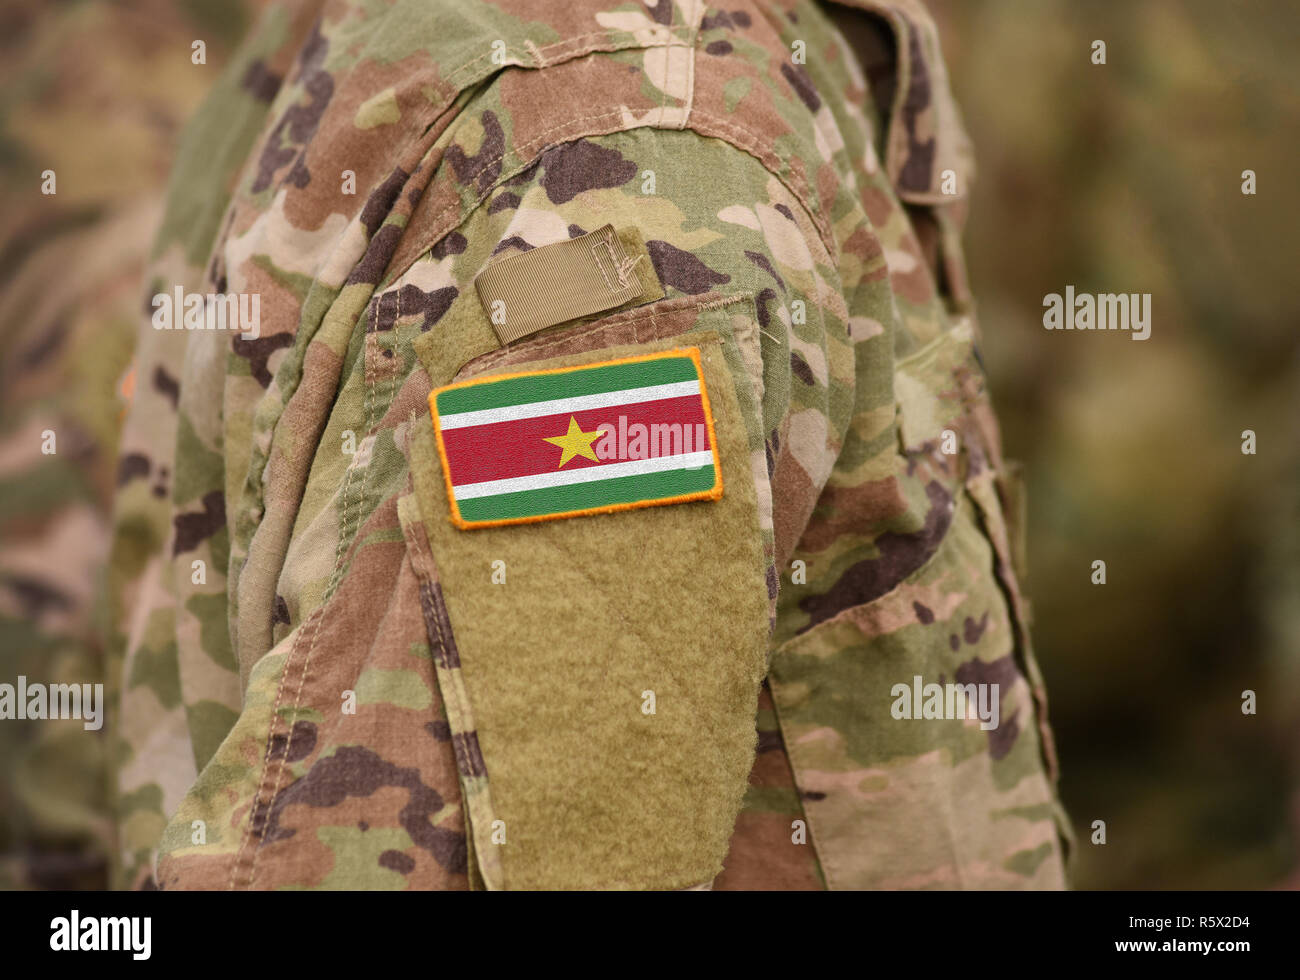 Flag of Suriname on soldiers arm (collage). - Stock Image